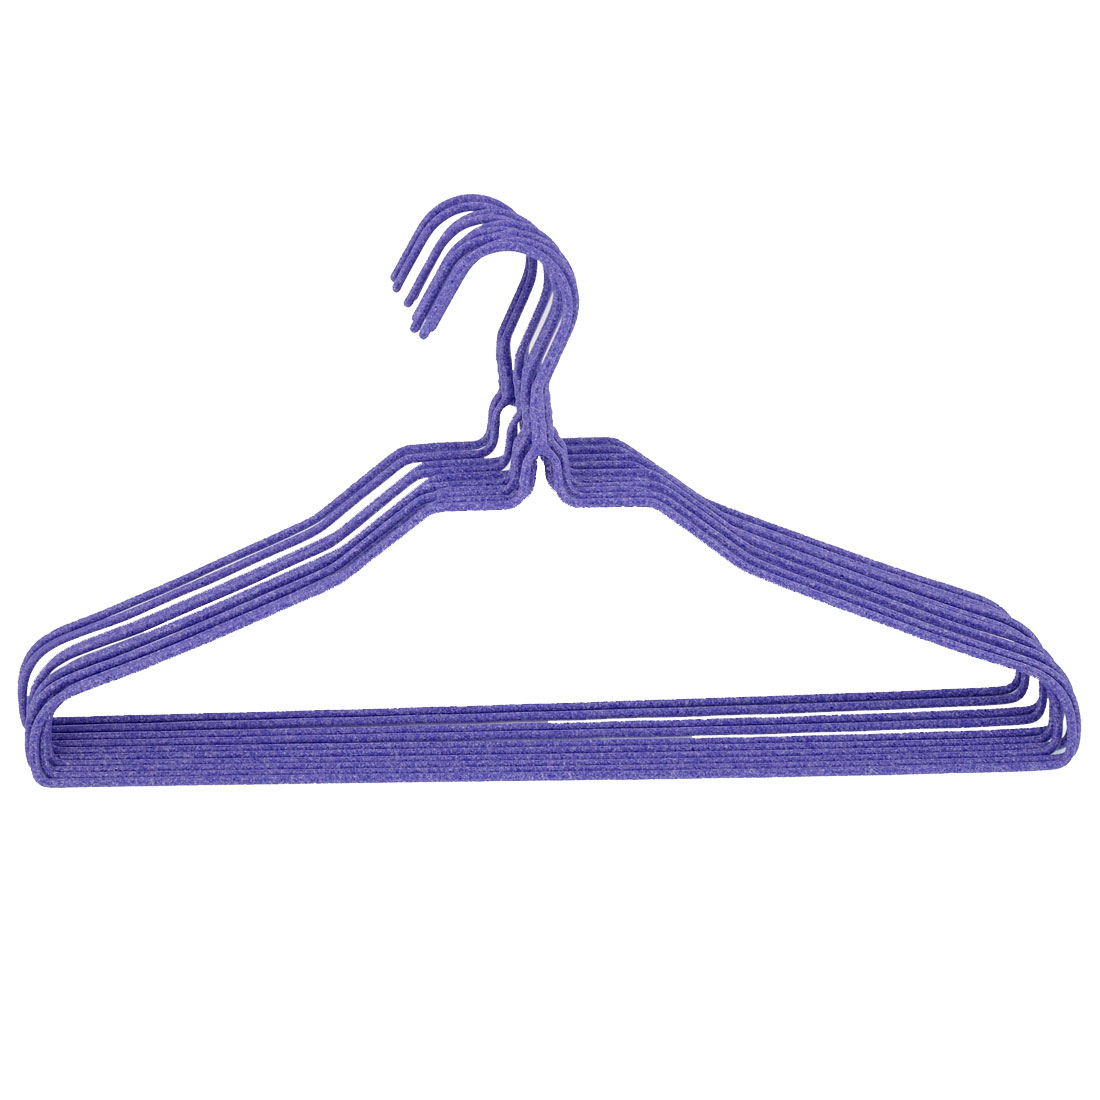 39.5cm x 21cm Trousers Pants Outdoor Indoor Hangers Hook Purple 10pcs